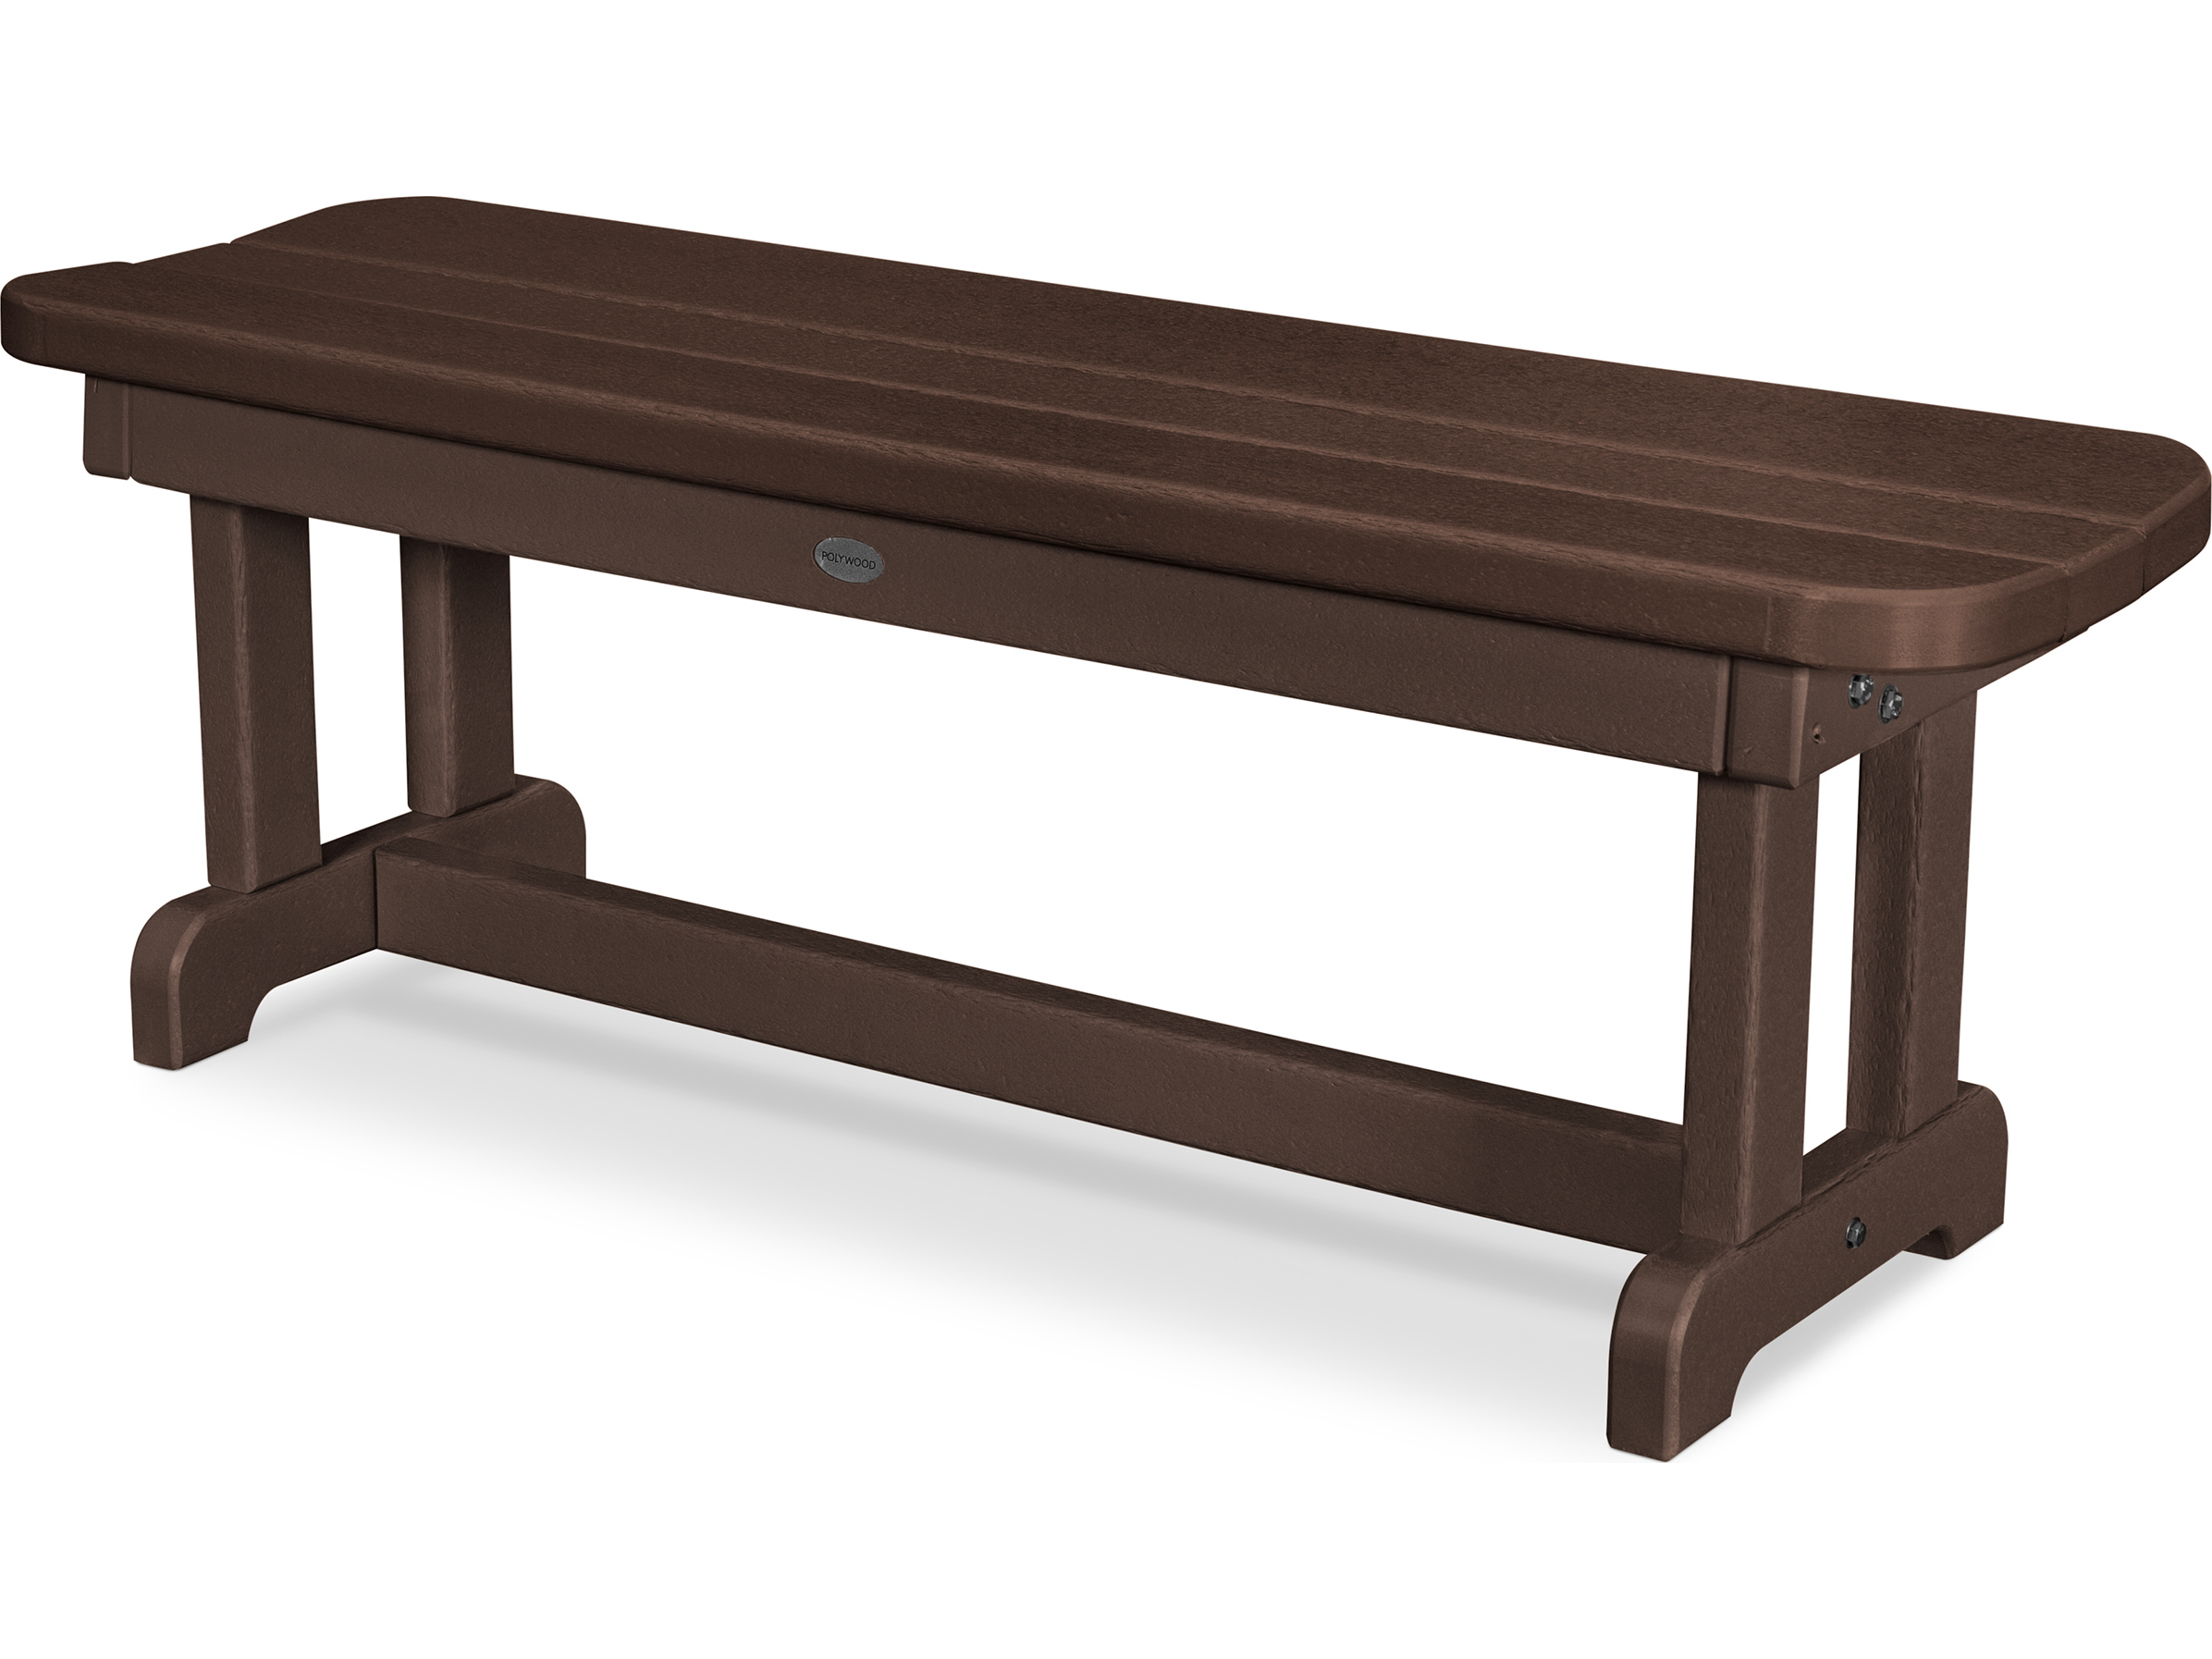 Polywood park recycled plastic 48 backless bench pbb48 Polywood bench